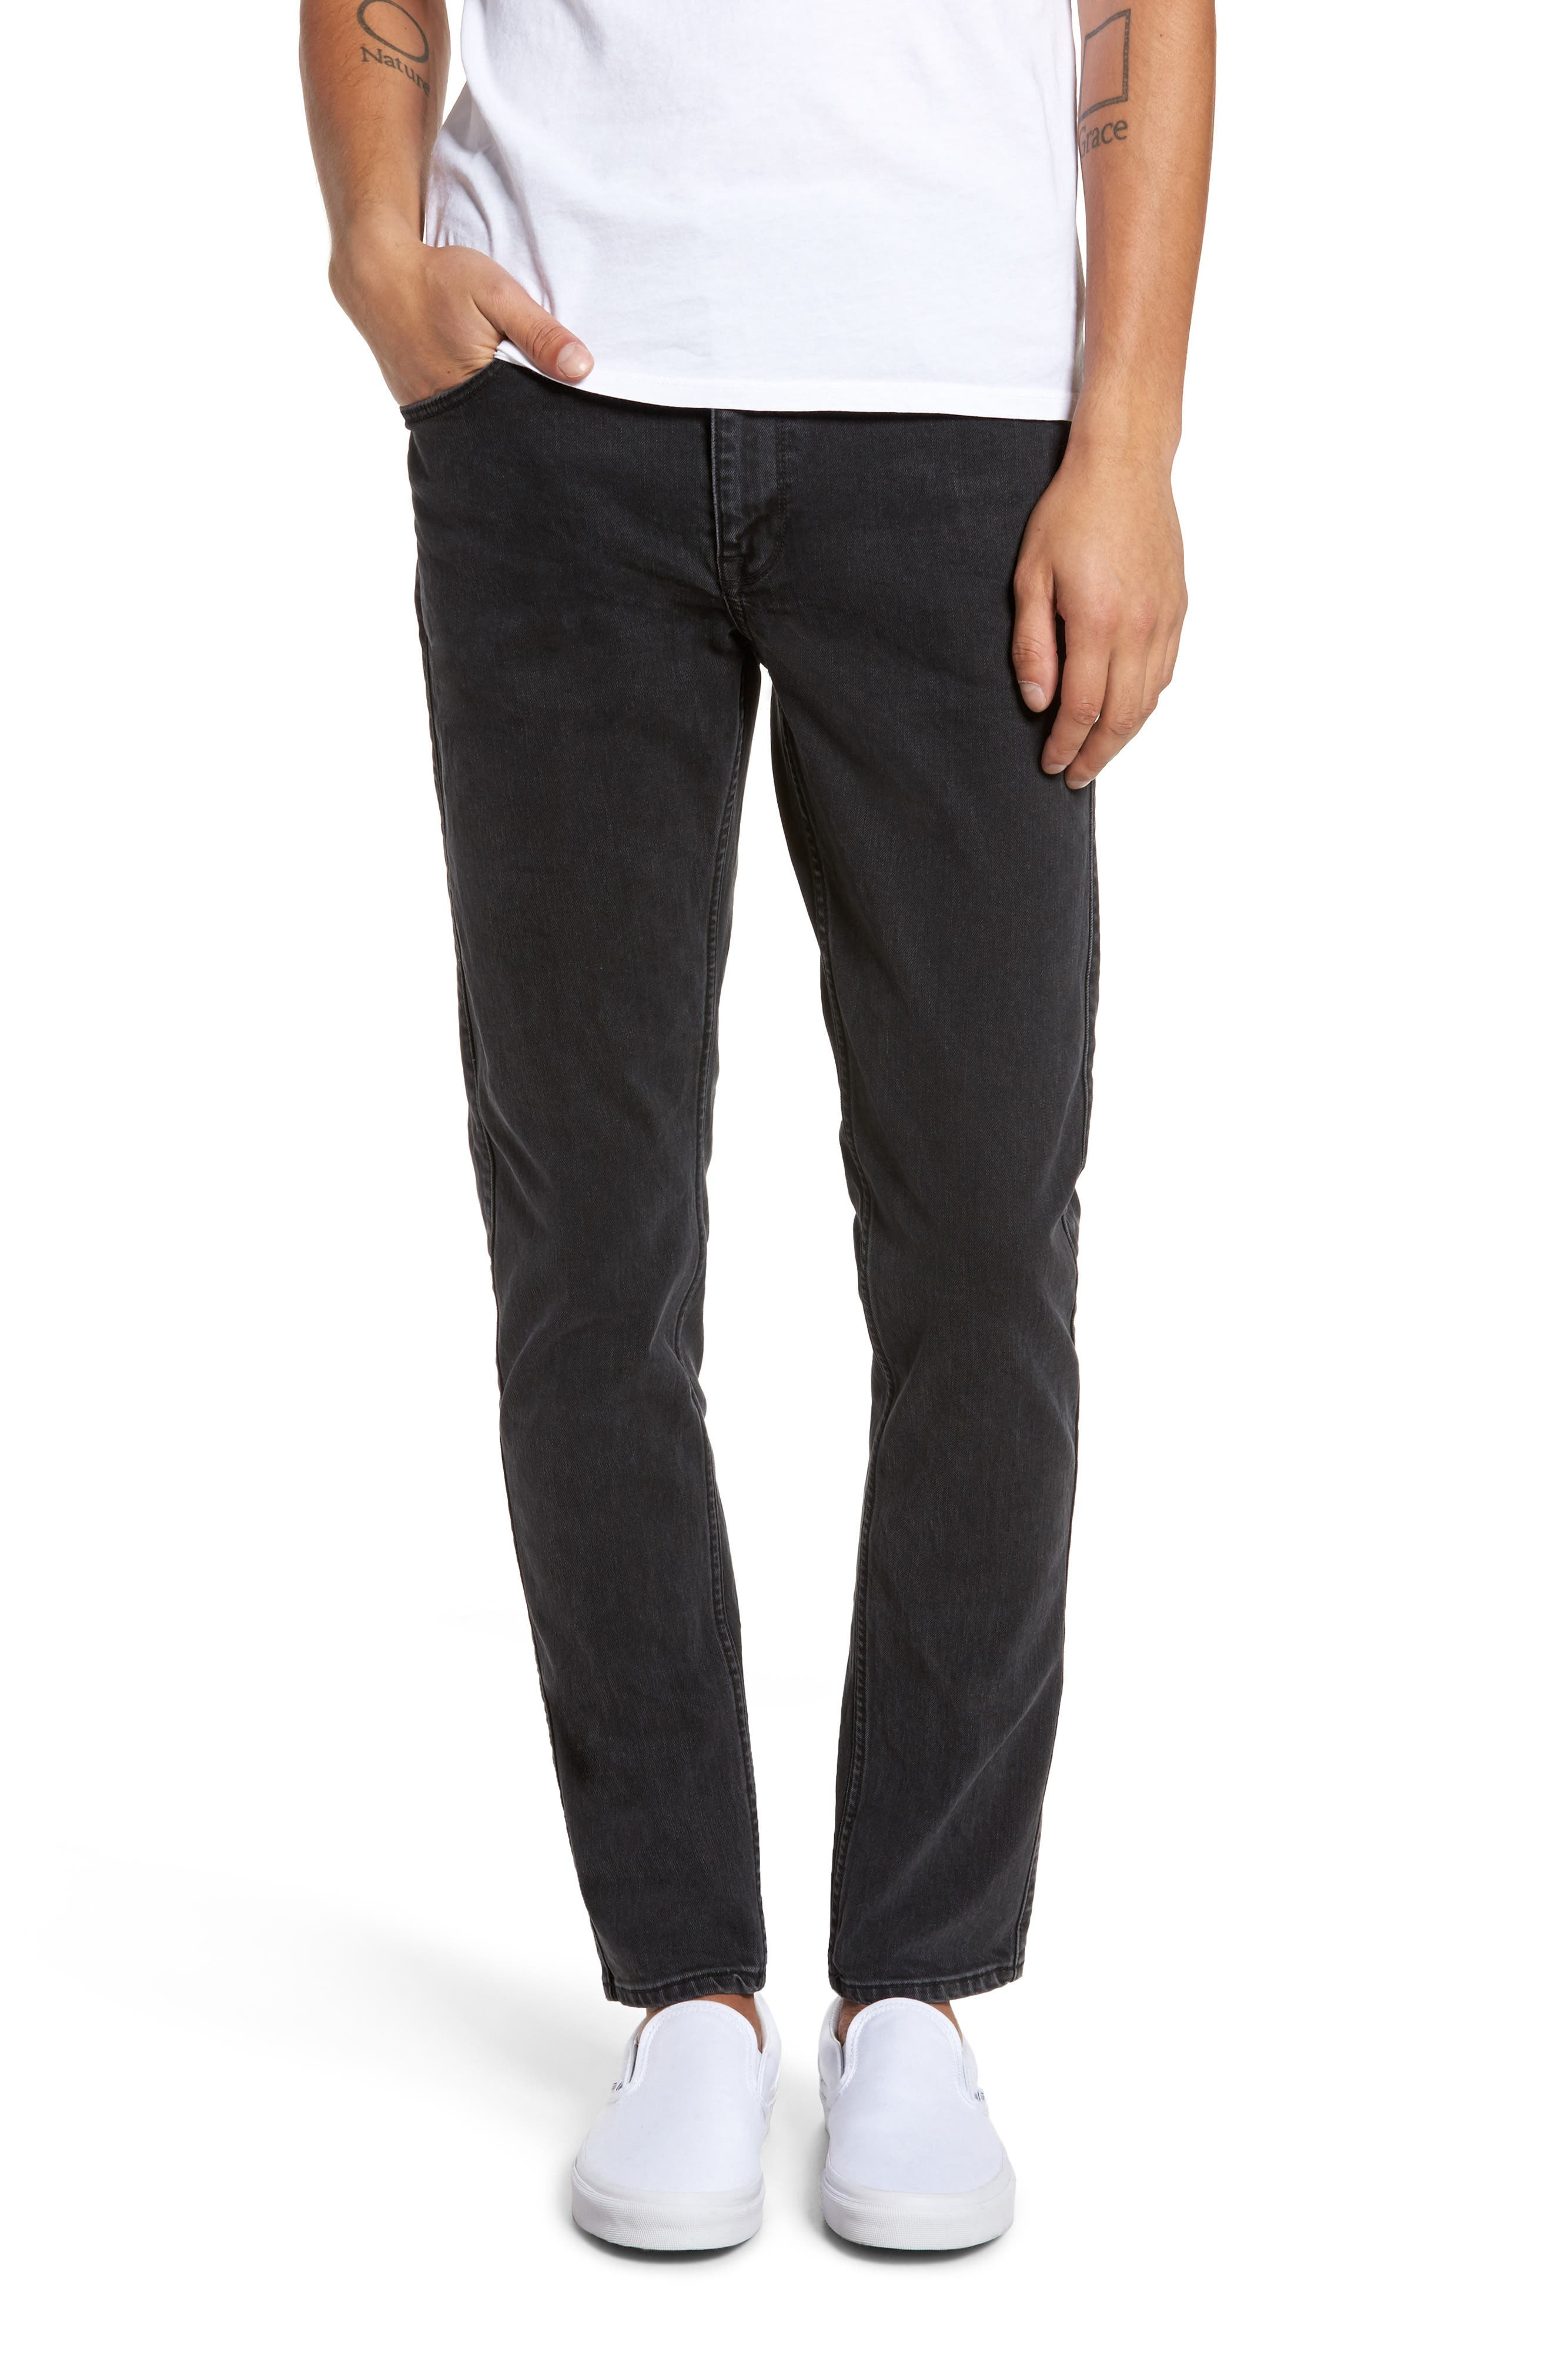 Clark Slim Straight Leg Jeans,                         Main,                         color, 001